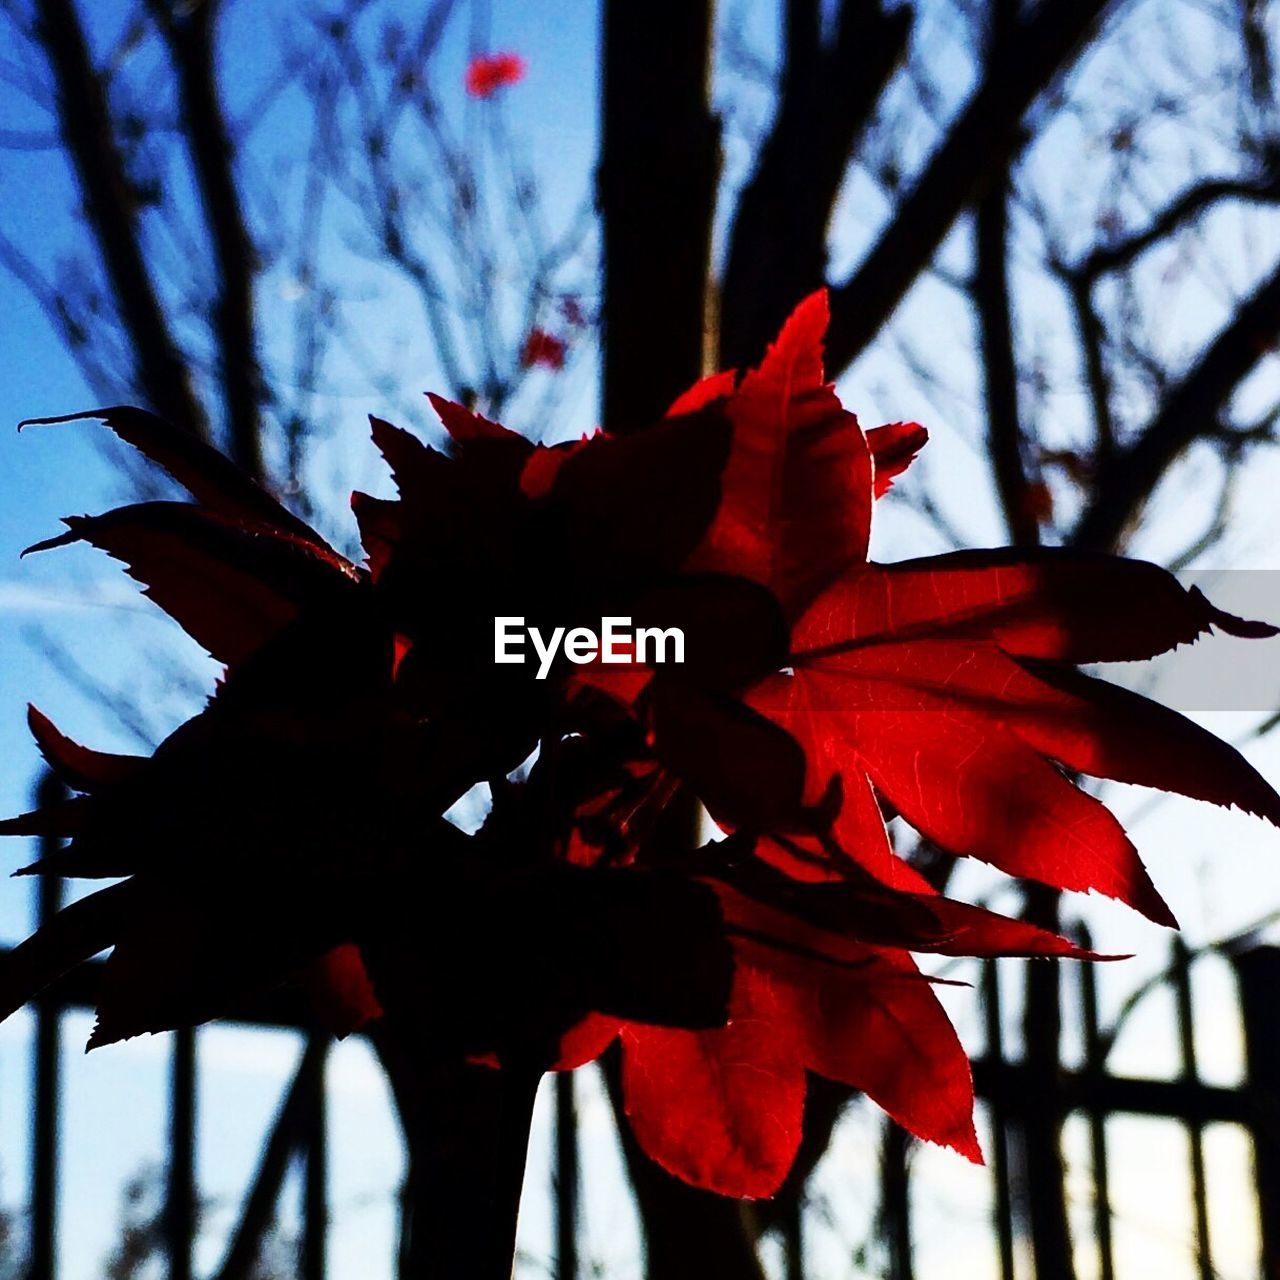 beauty in nature, nature, growth, branch, flower, leaf, autumn, low angle view, red, tree, fragility, no people, outdoors, maple leaf, day, close-up, sky, maple, freshness